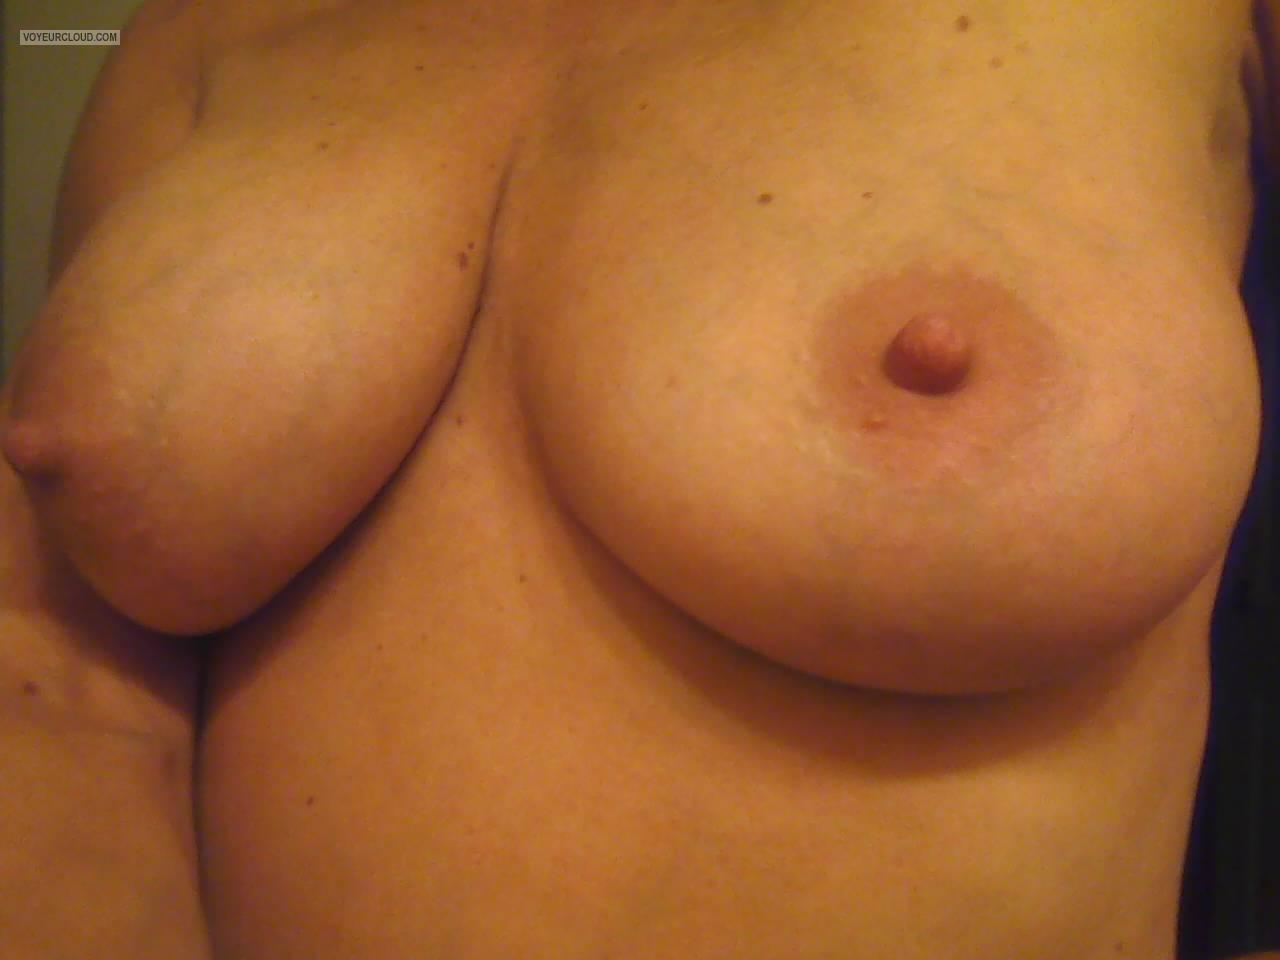 Big Tits Of My Wife Selfie by Mrs. Godzirra